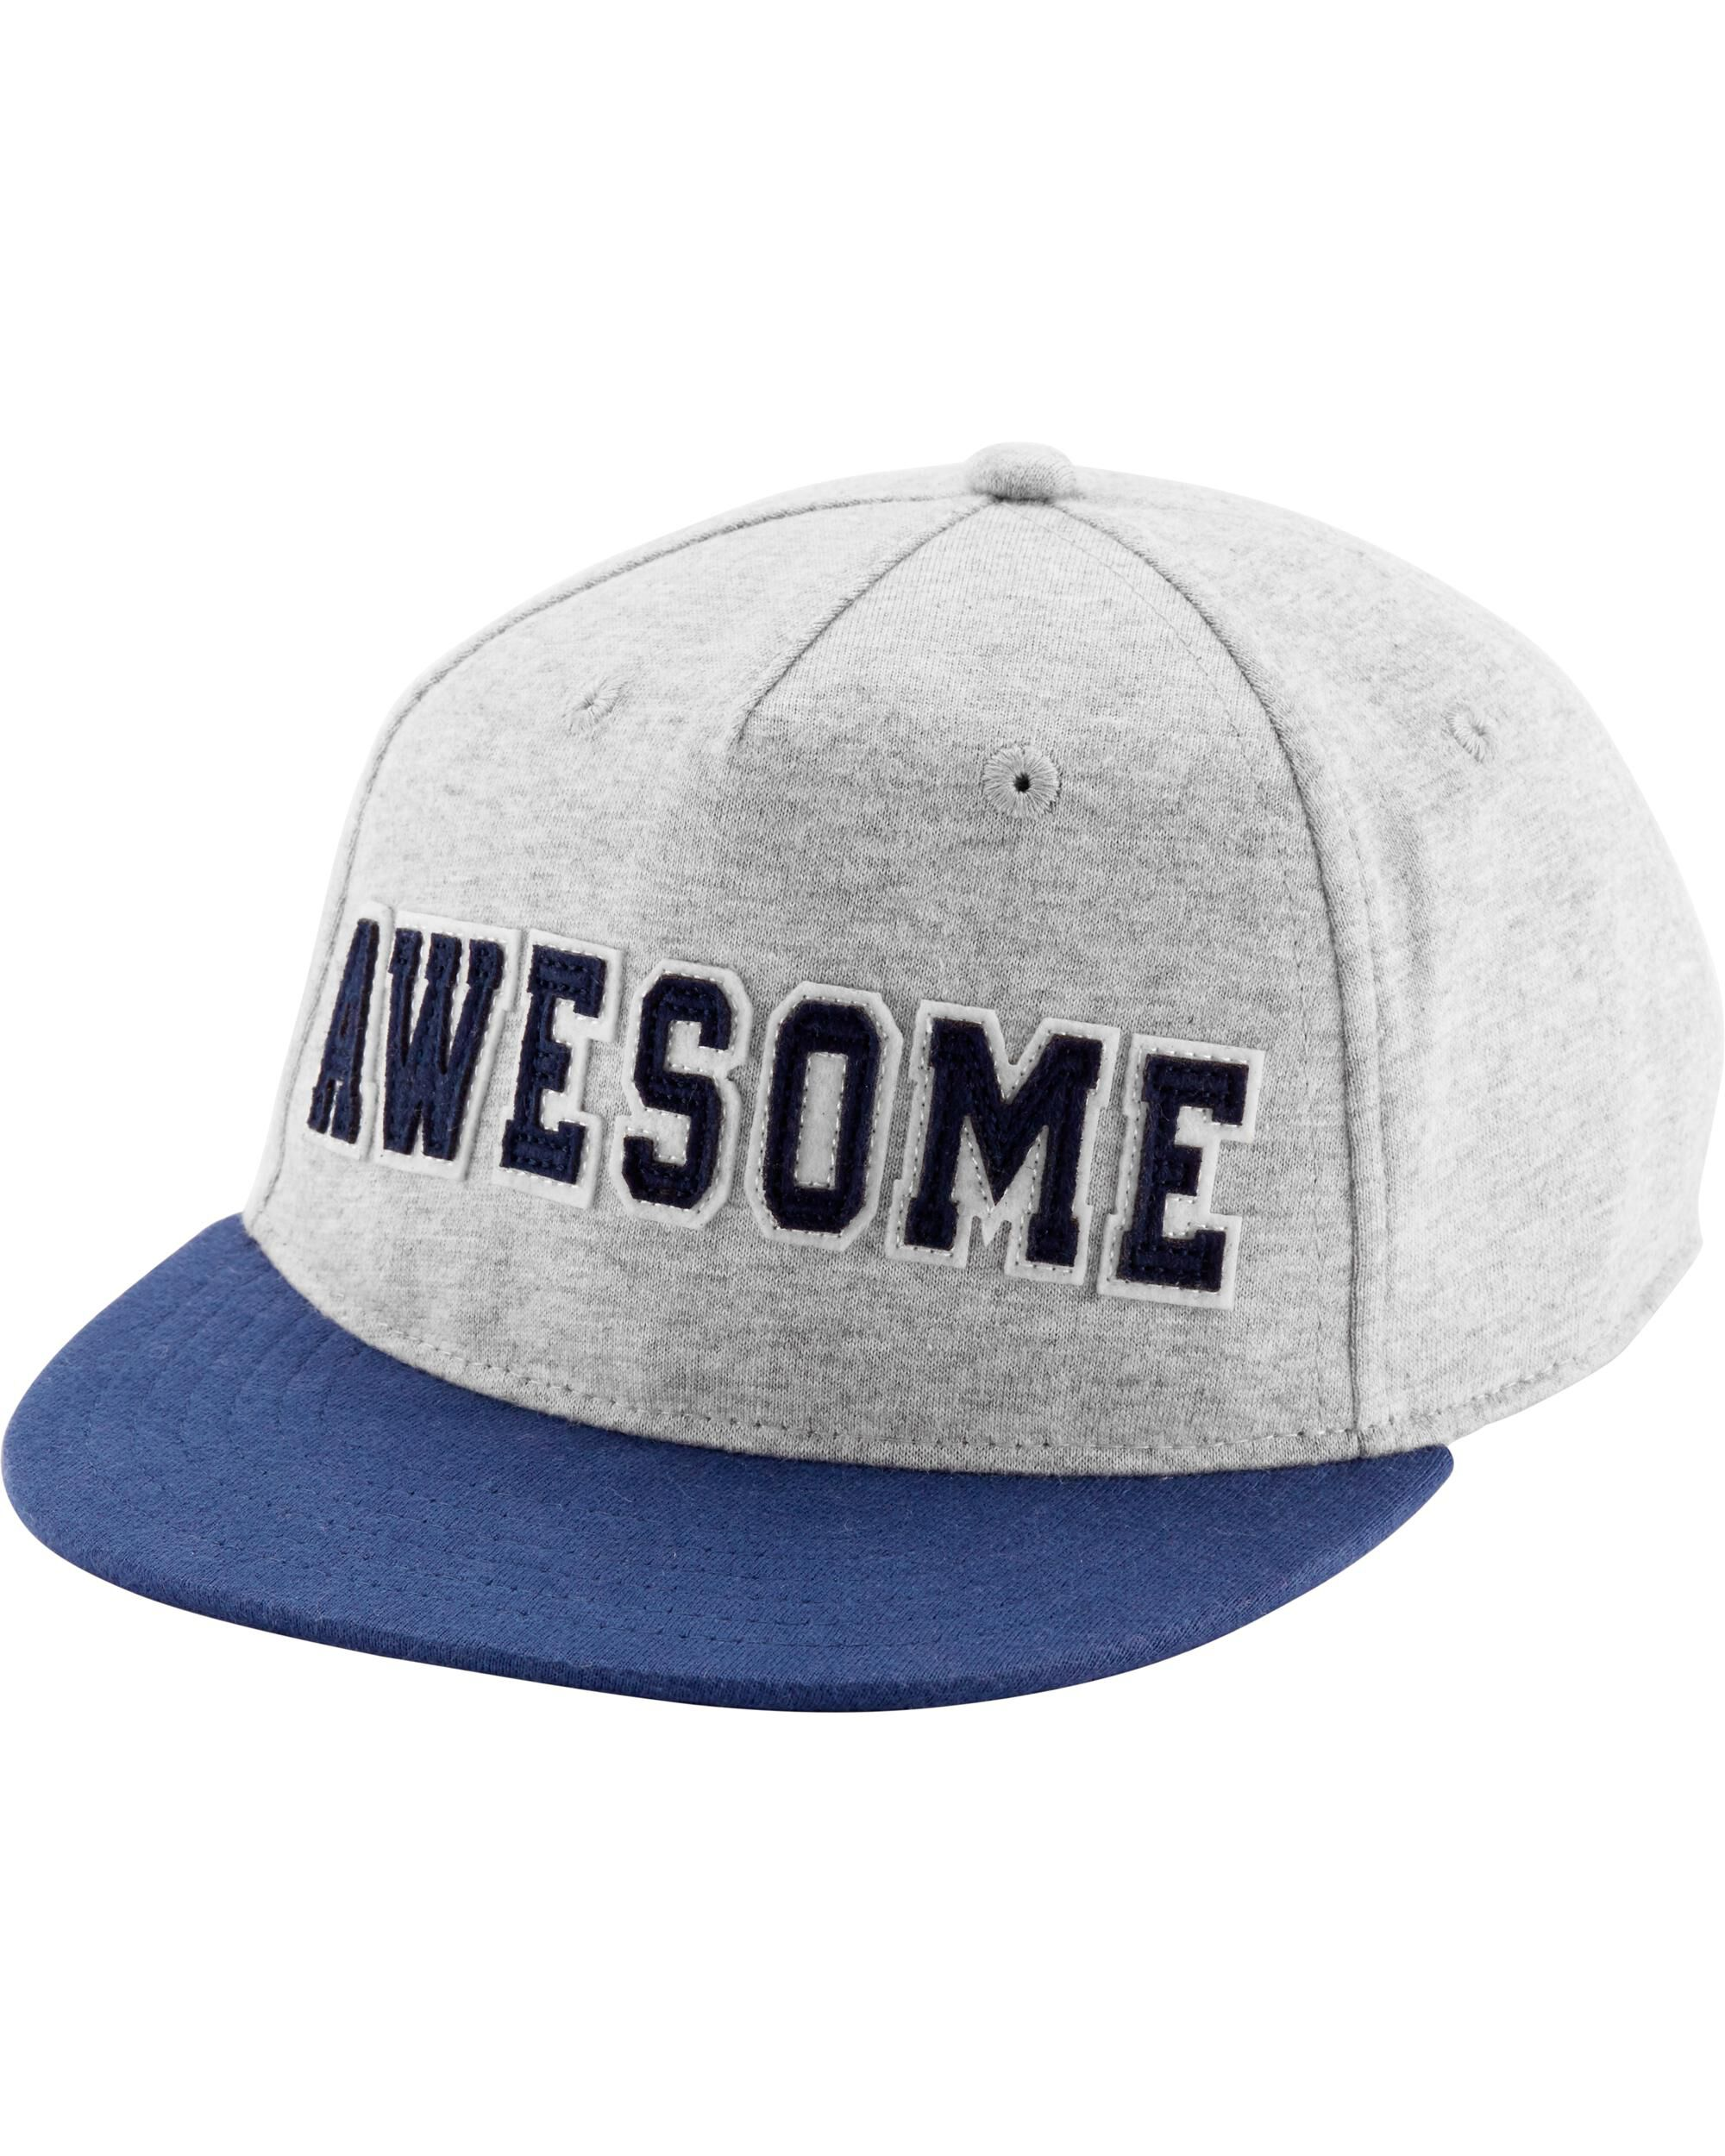 Awesome Baseball Hat. Loading zoom 41287829fe3